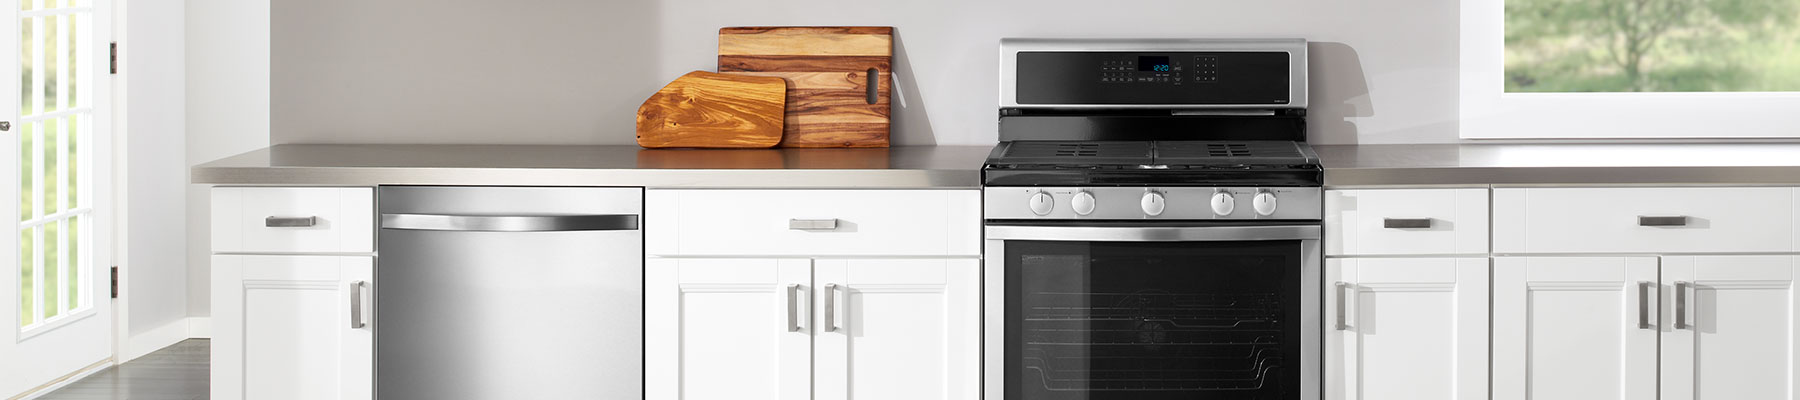 Appliance sales, parts, delivery and installation in Ogden Utah ...